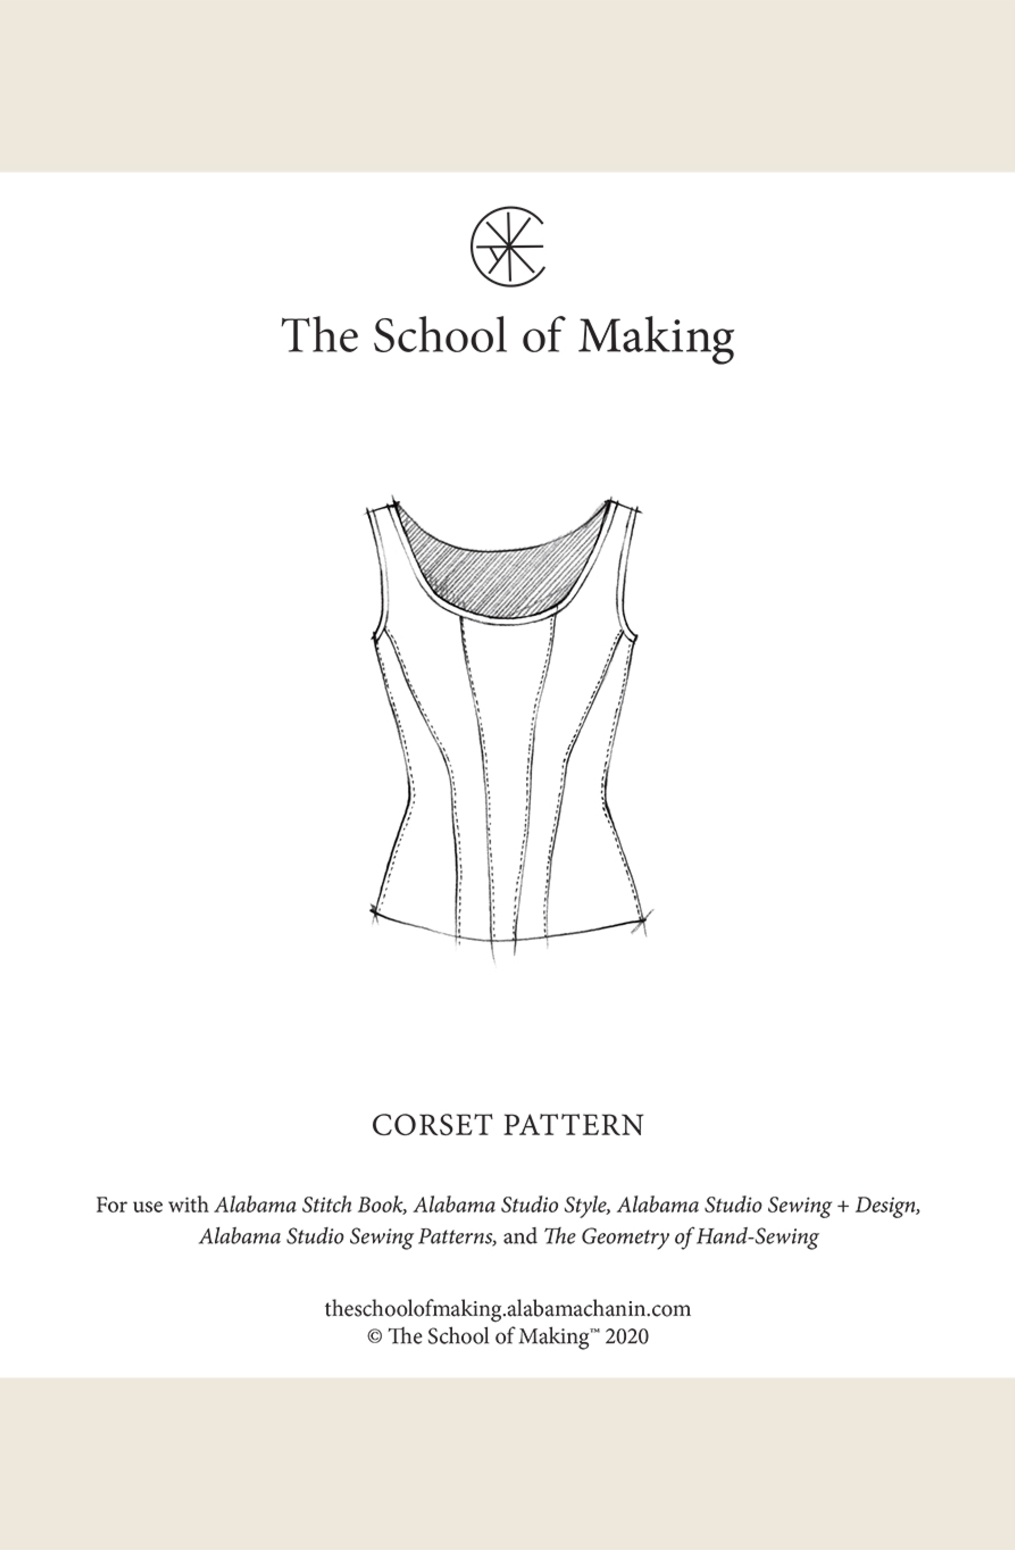 The school of making corset pattern